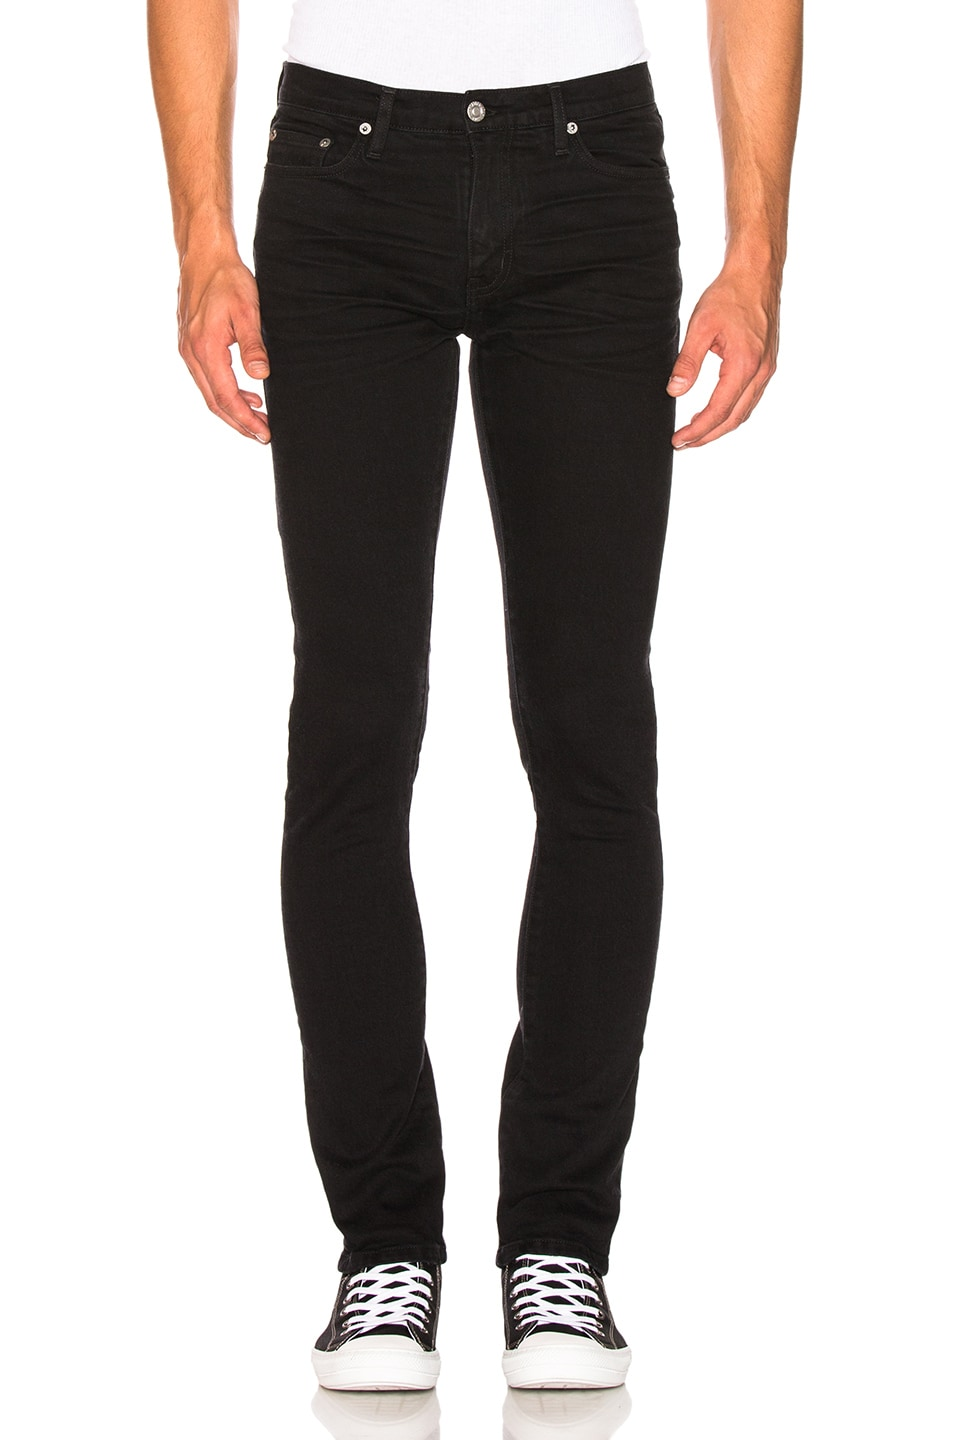 Image 1 of Adaptation Skinny Jeans in Onyx